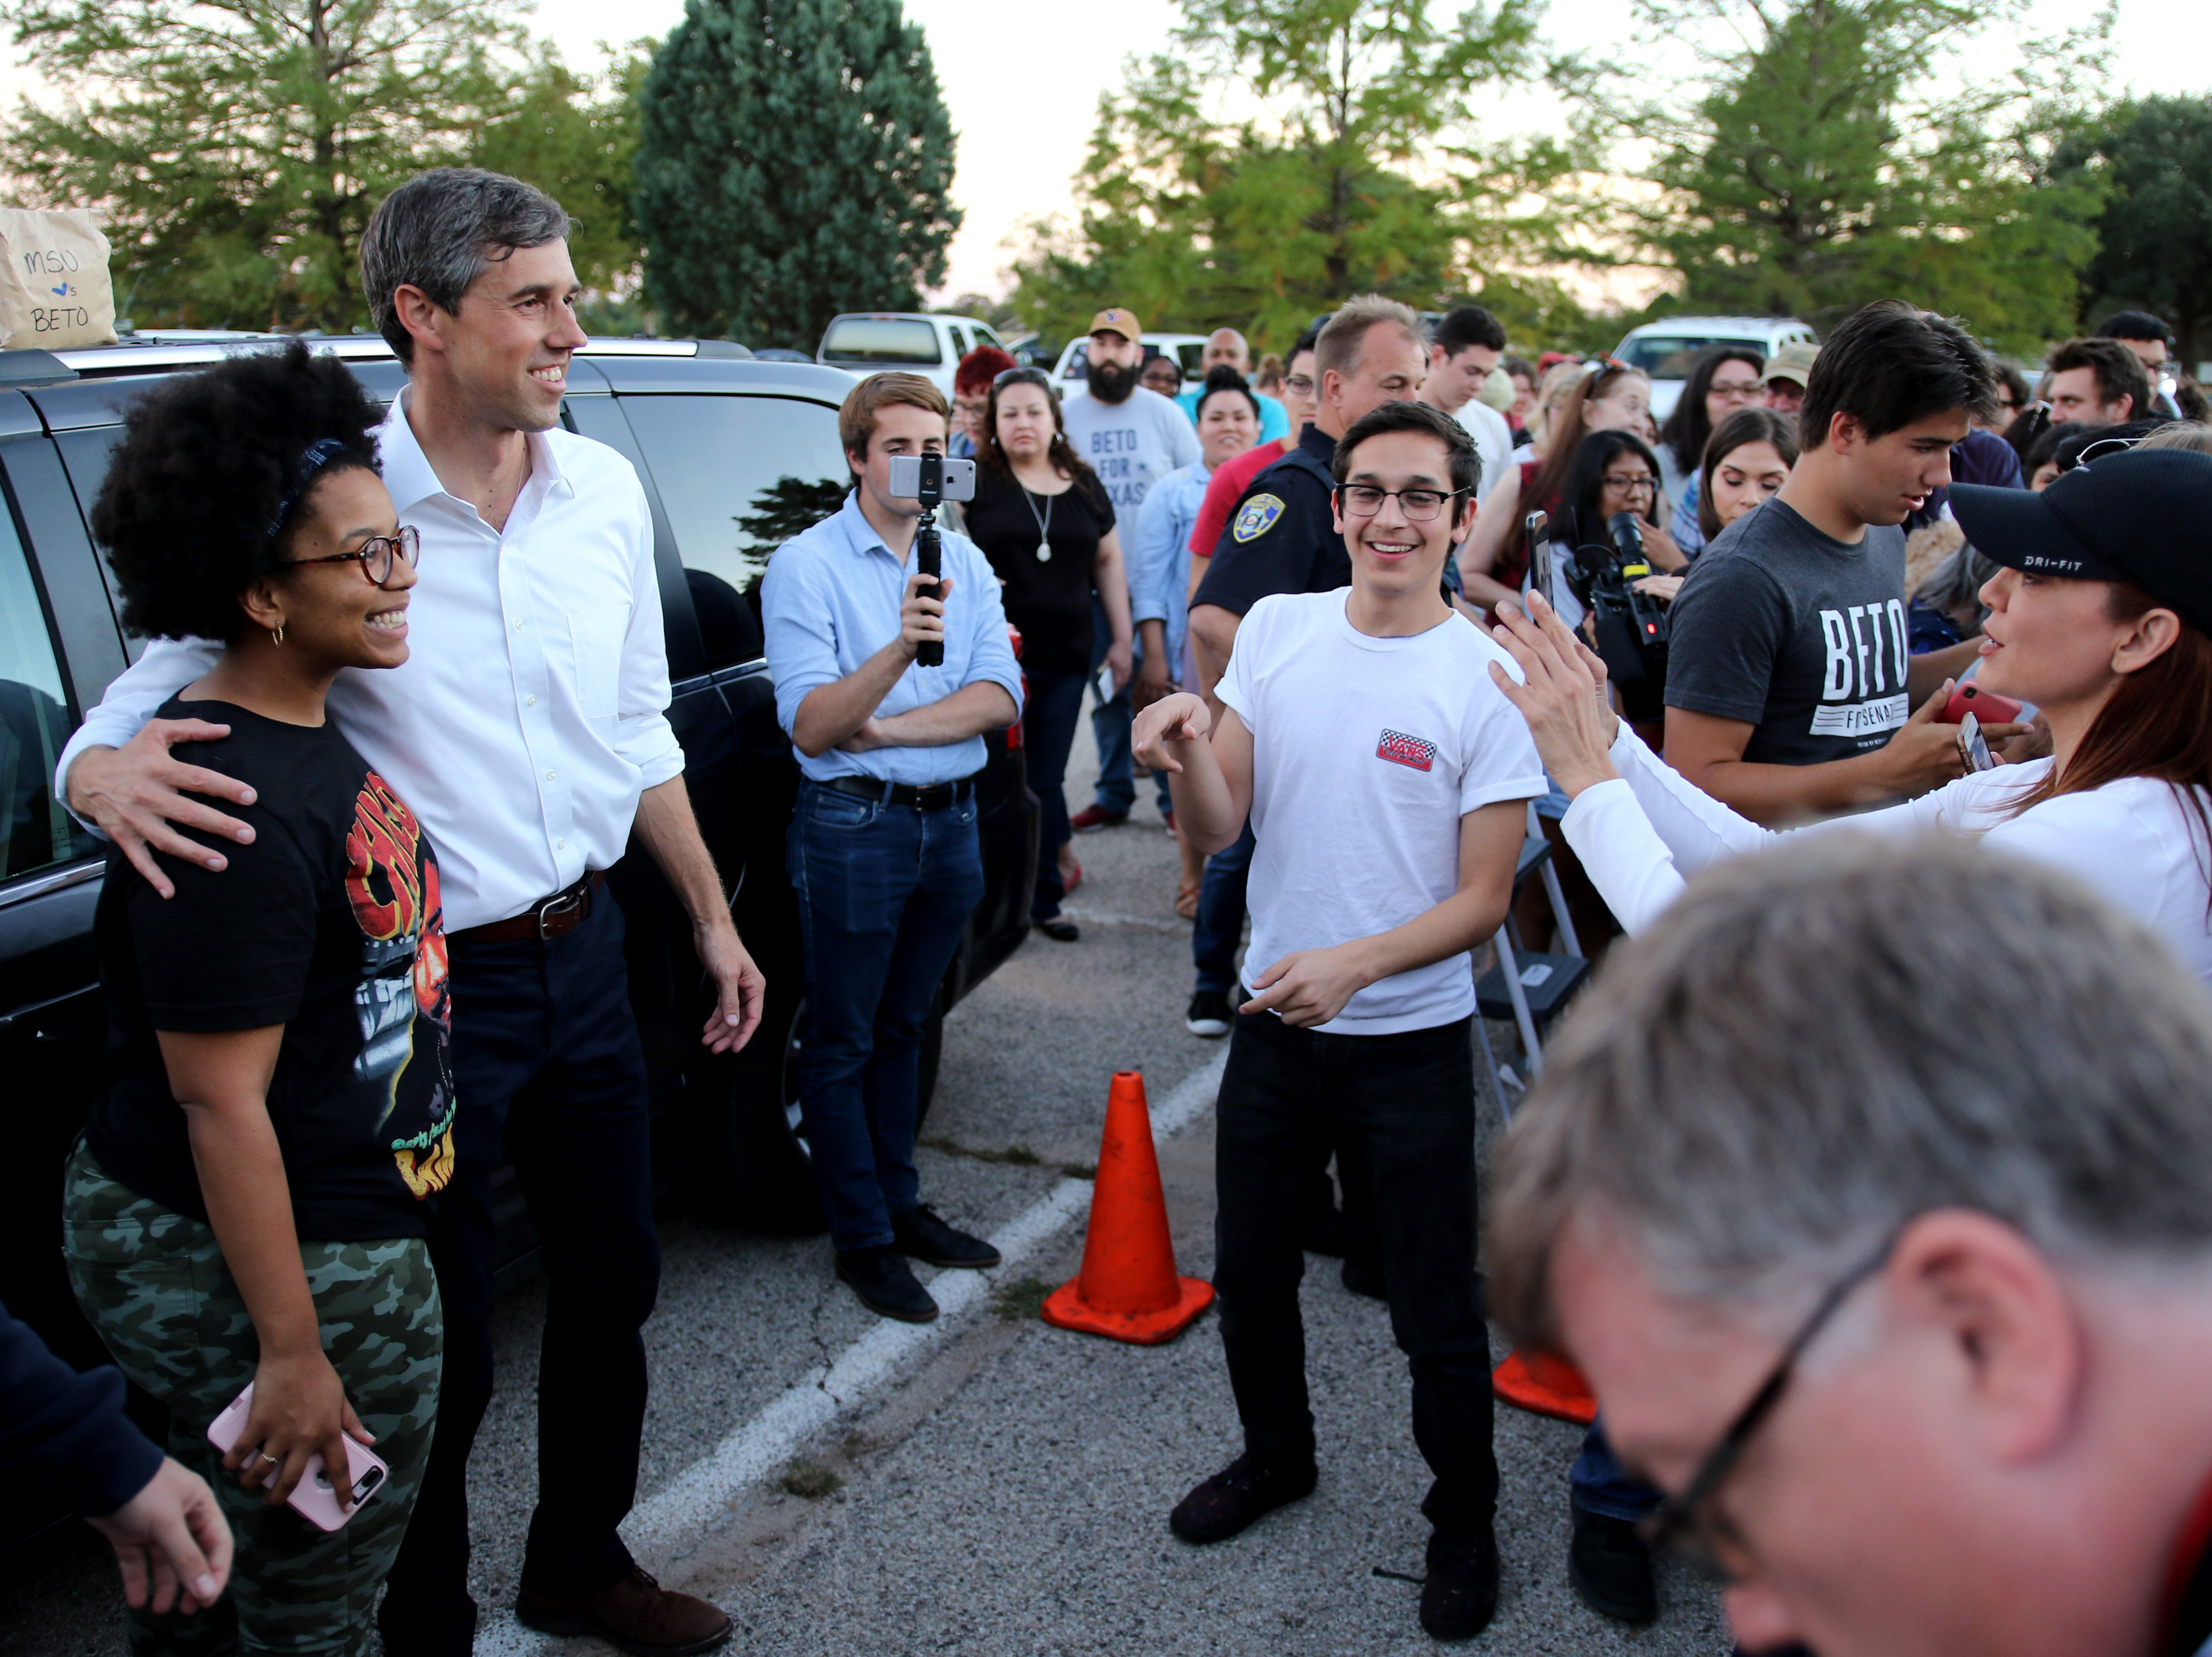 After Rep. Beto O'Rourke gives his speech almost the entire crowd rushed to get a picture with him Monday, Oct. 29, 2018, at Kiwanis Park in Wichita Falls.